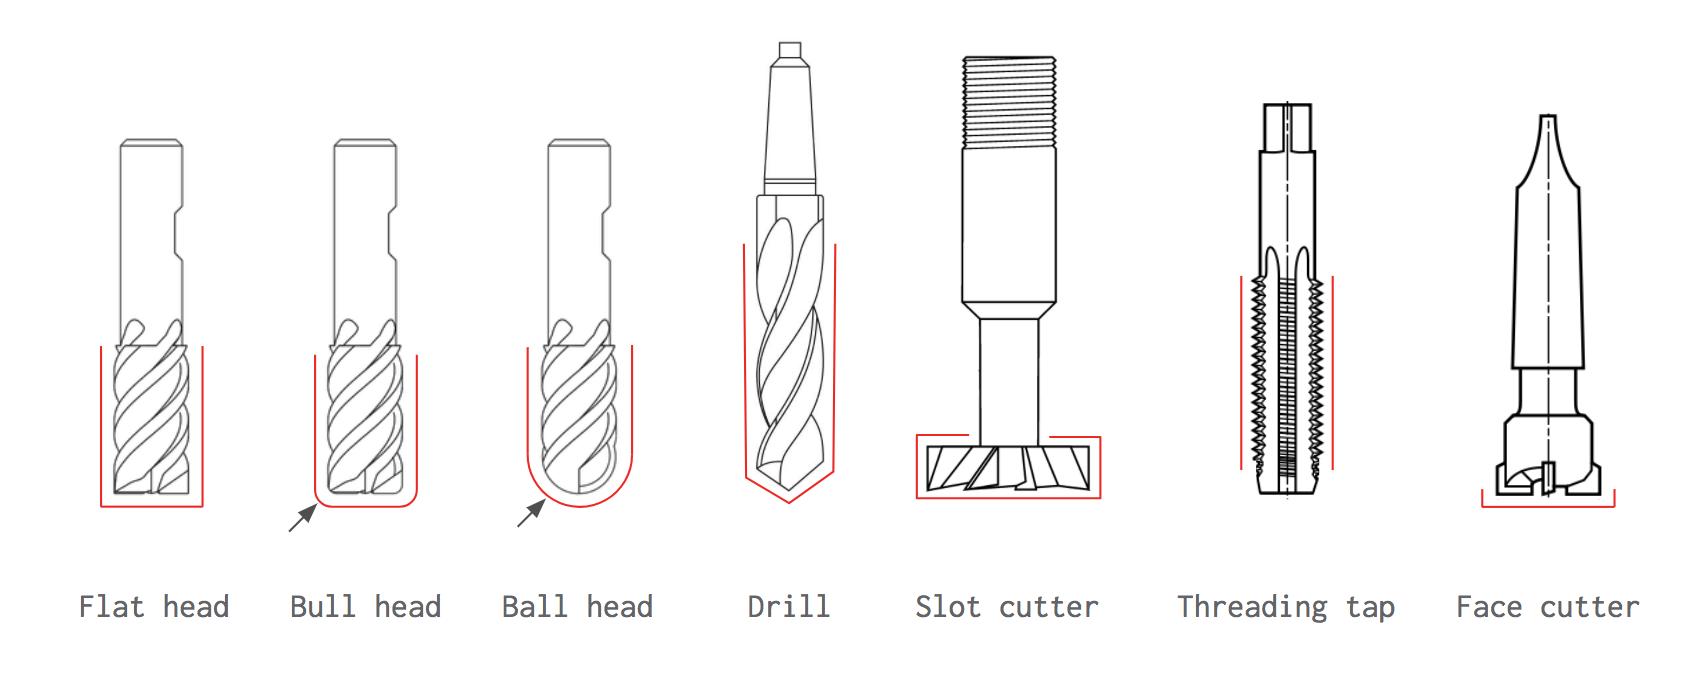 A selection of the most common CNC cutting tools